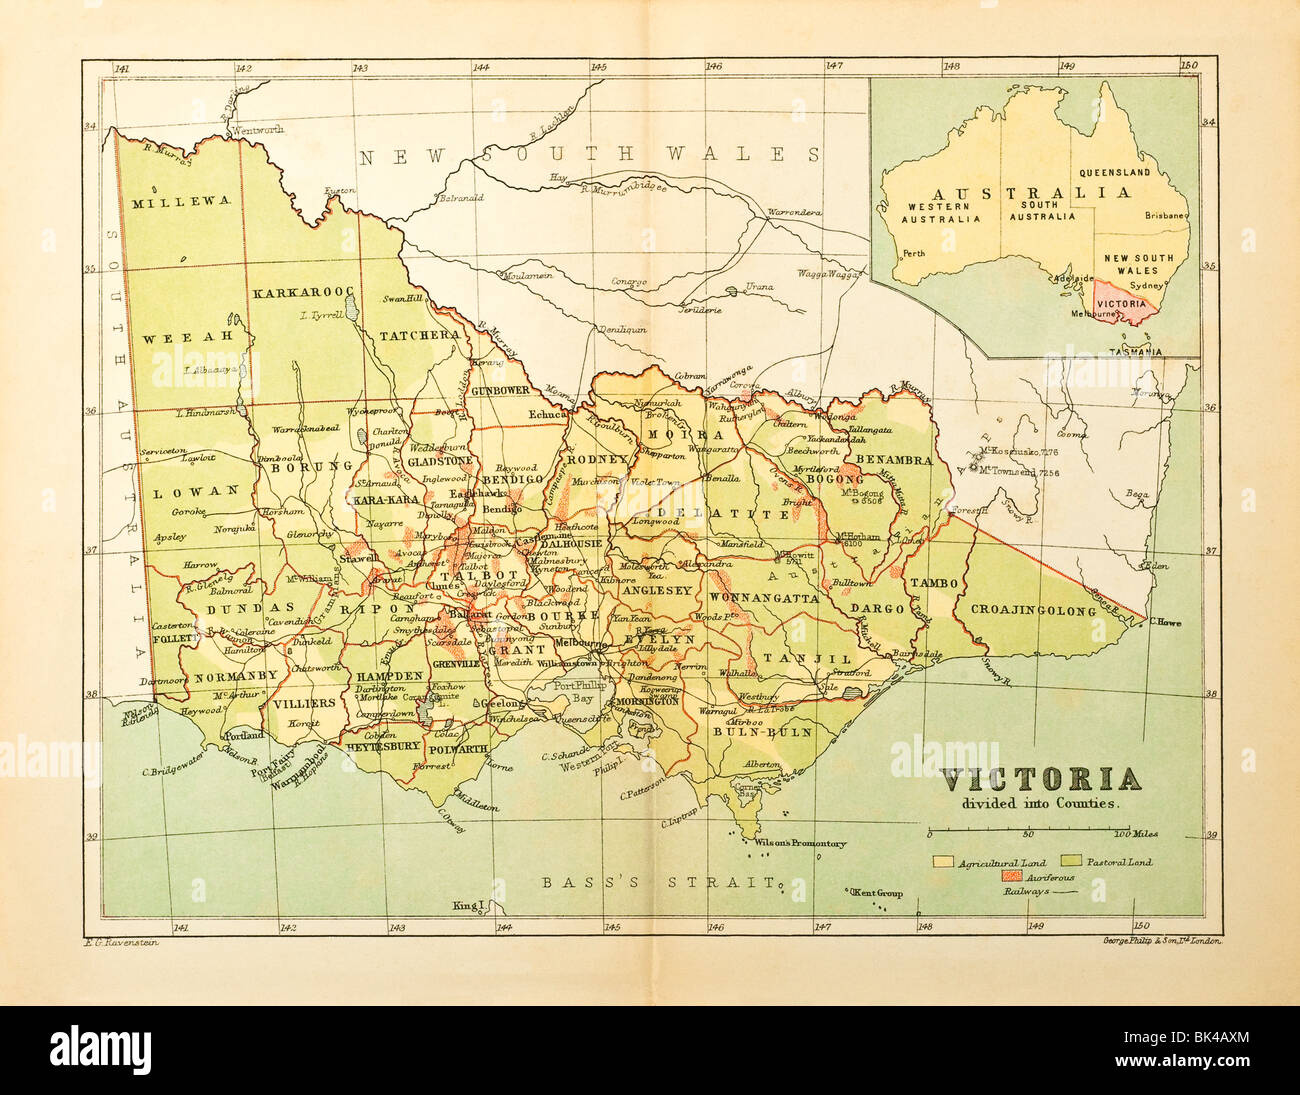 Victoria In Australia Map.Old Map Of Victoria State Australia Divided Into Counties Stock